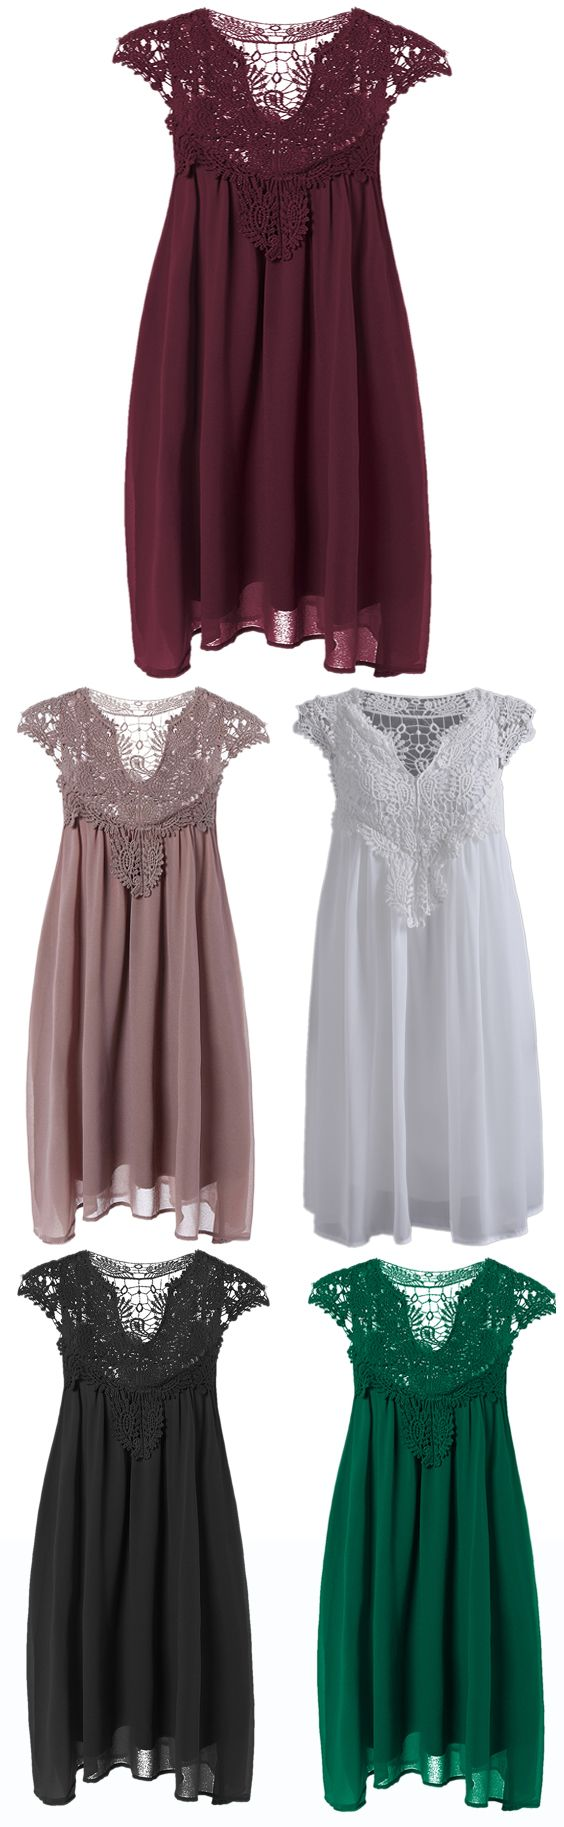 "Plus Size Lace Spliced Hollow Out Dress  -  5 different colors shown here.  Really pretty and would be modest dresses (I think but no modeling on a person).  Might need to be longer.  I can't tell if the front needs the ""magic lace triangle"" cover up if the neckline V is too low."